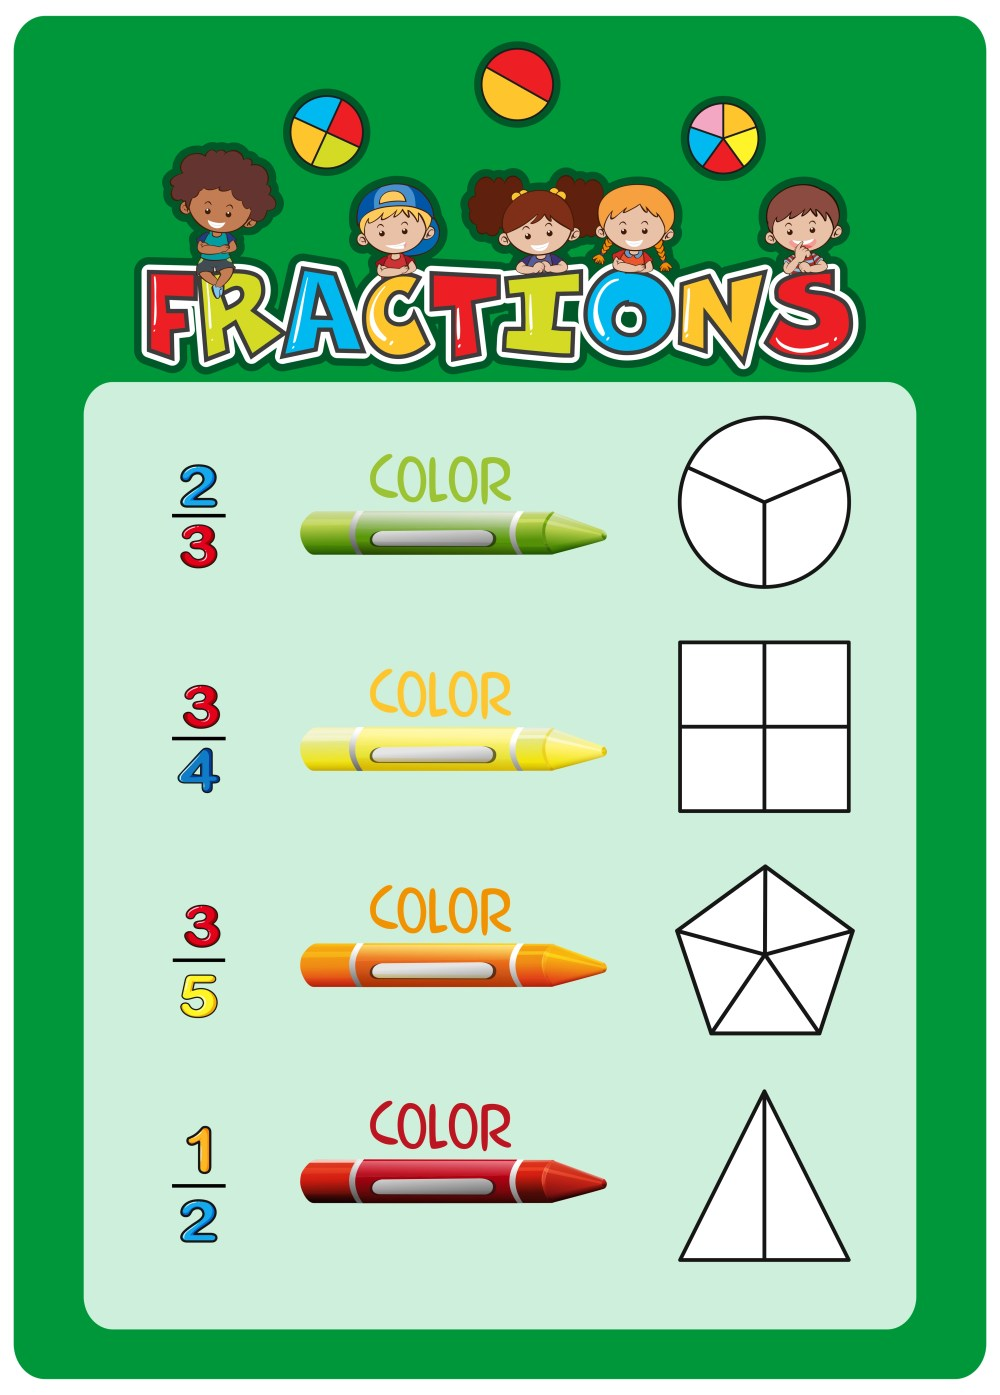 medium resolution of Math fractions worksheet template - Download Free Vectors